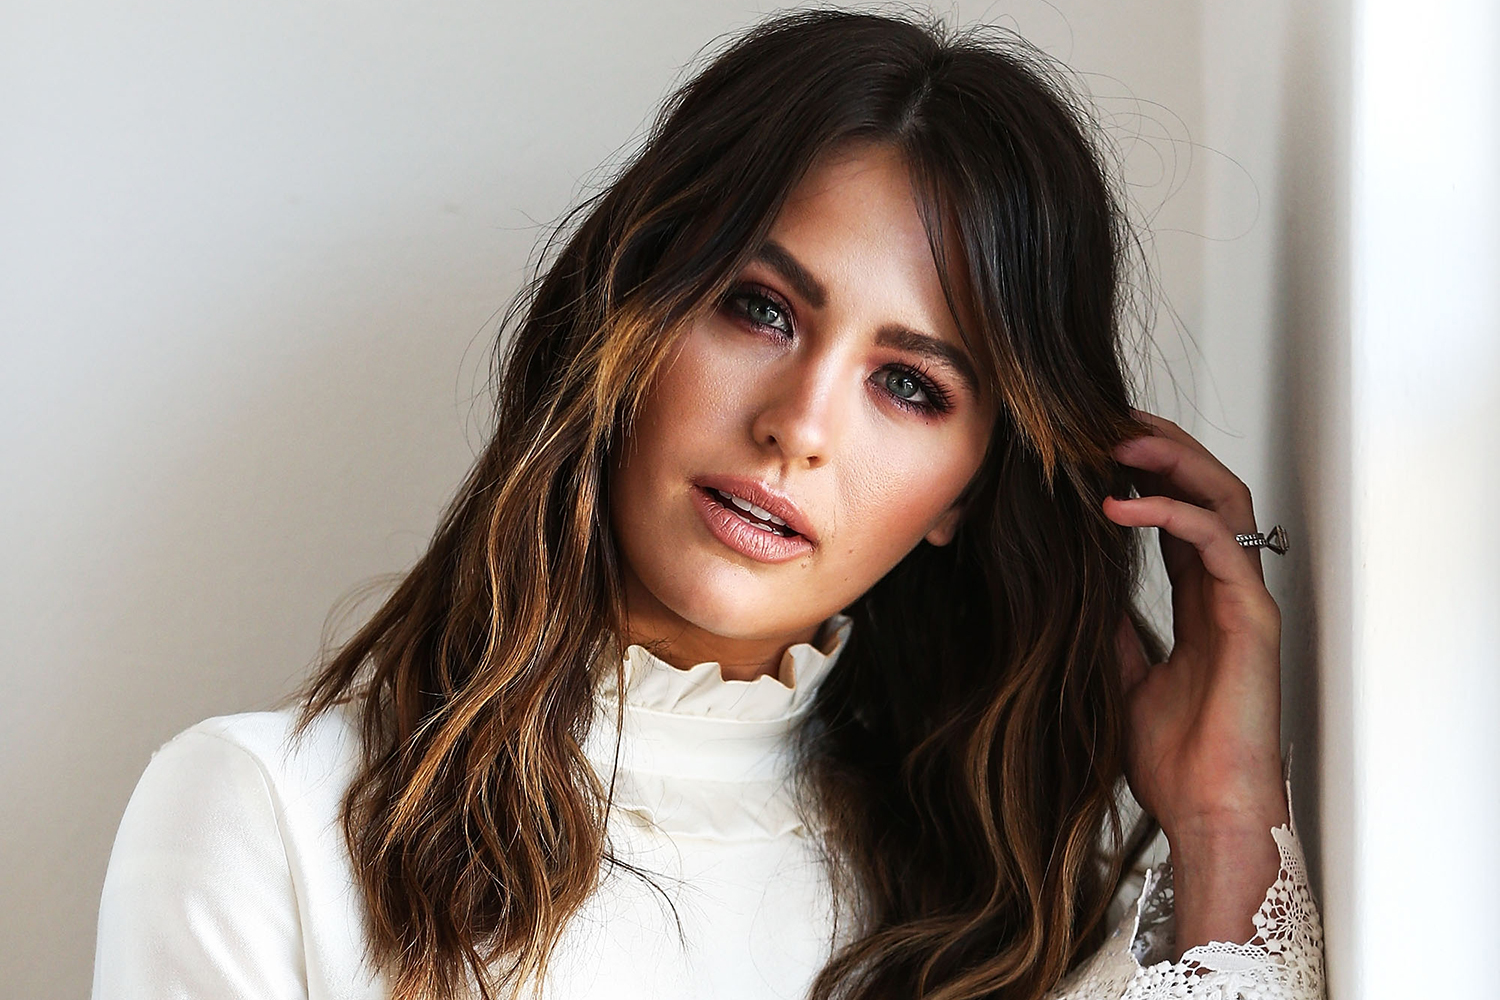 Jesinta Franklin nudes (67 foto and video), Ass, Is a cute, Selfie, cleavage 2019